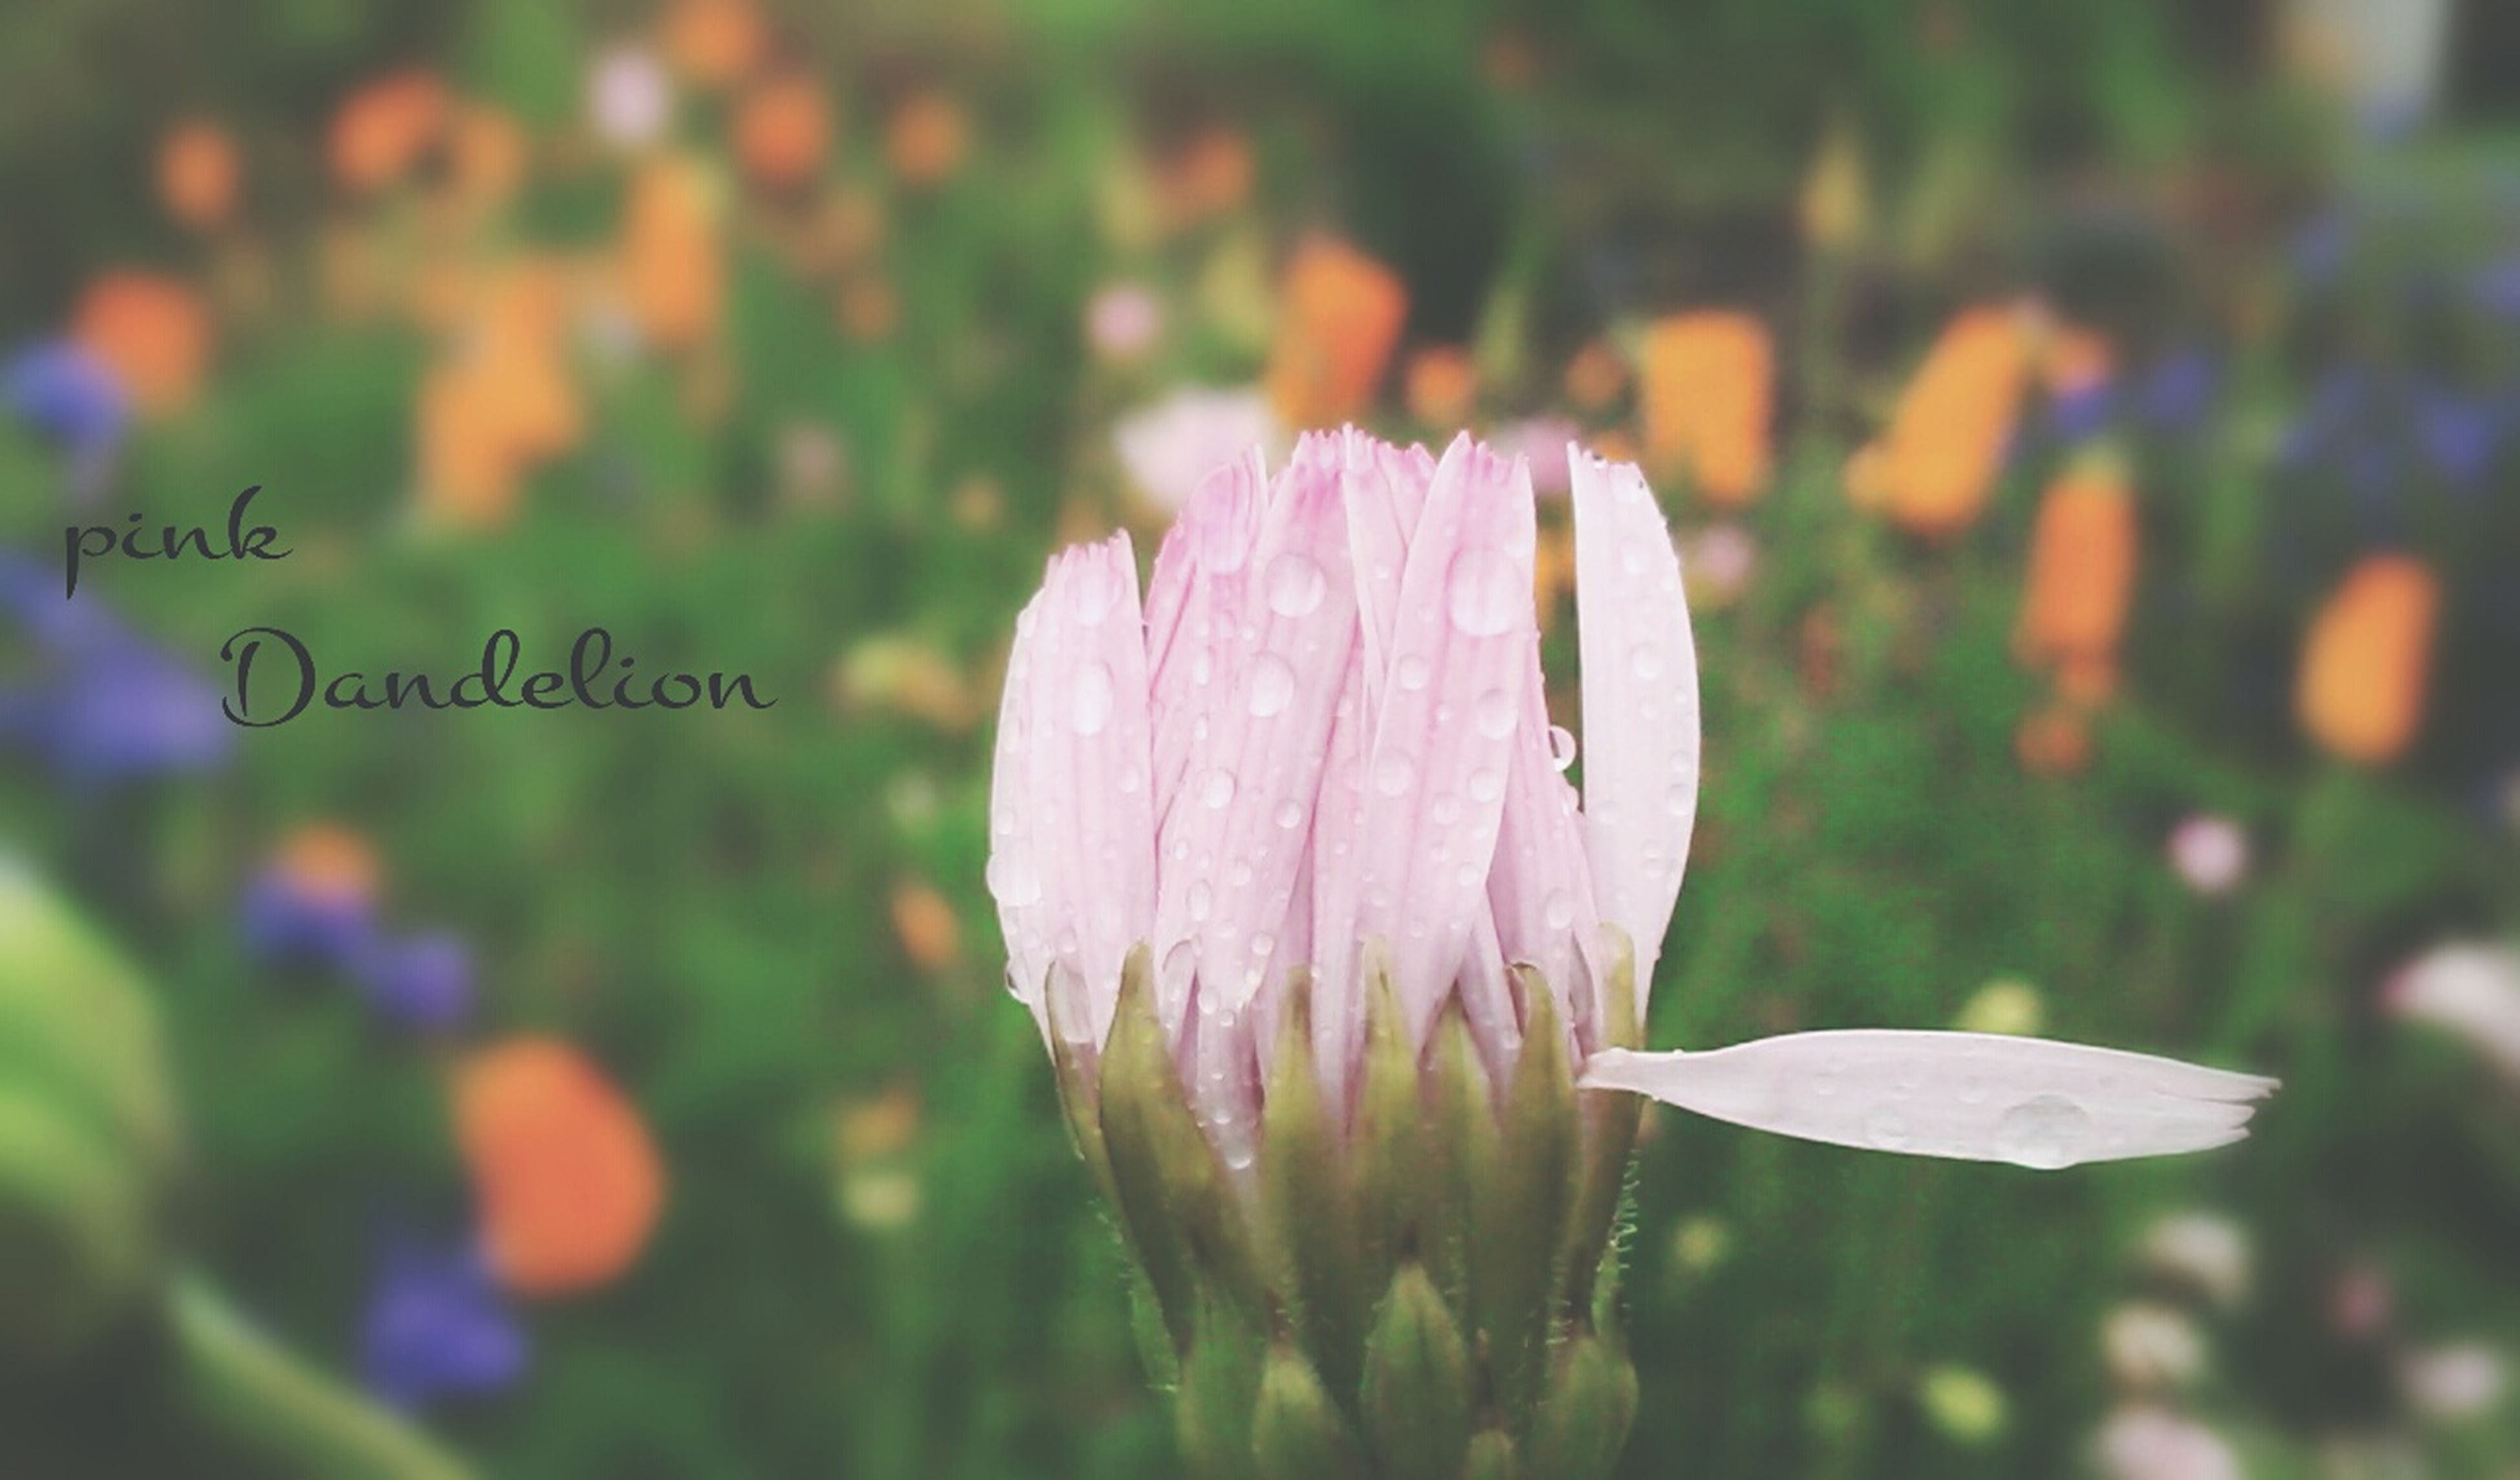 flower, freshness, petal, fragility, growth, focus on foreground, beauty in nature, flower head, close-up, plant, nature, blooming, pink color, field, stem, selective focus, day, outdoors, no people, single flower